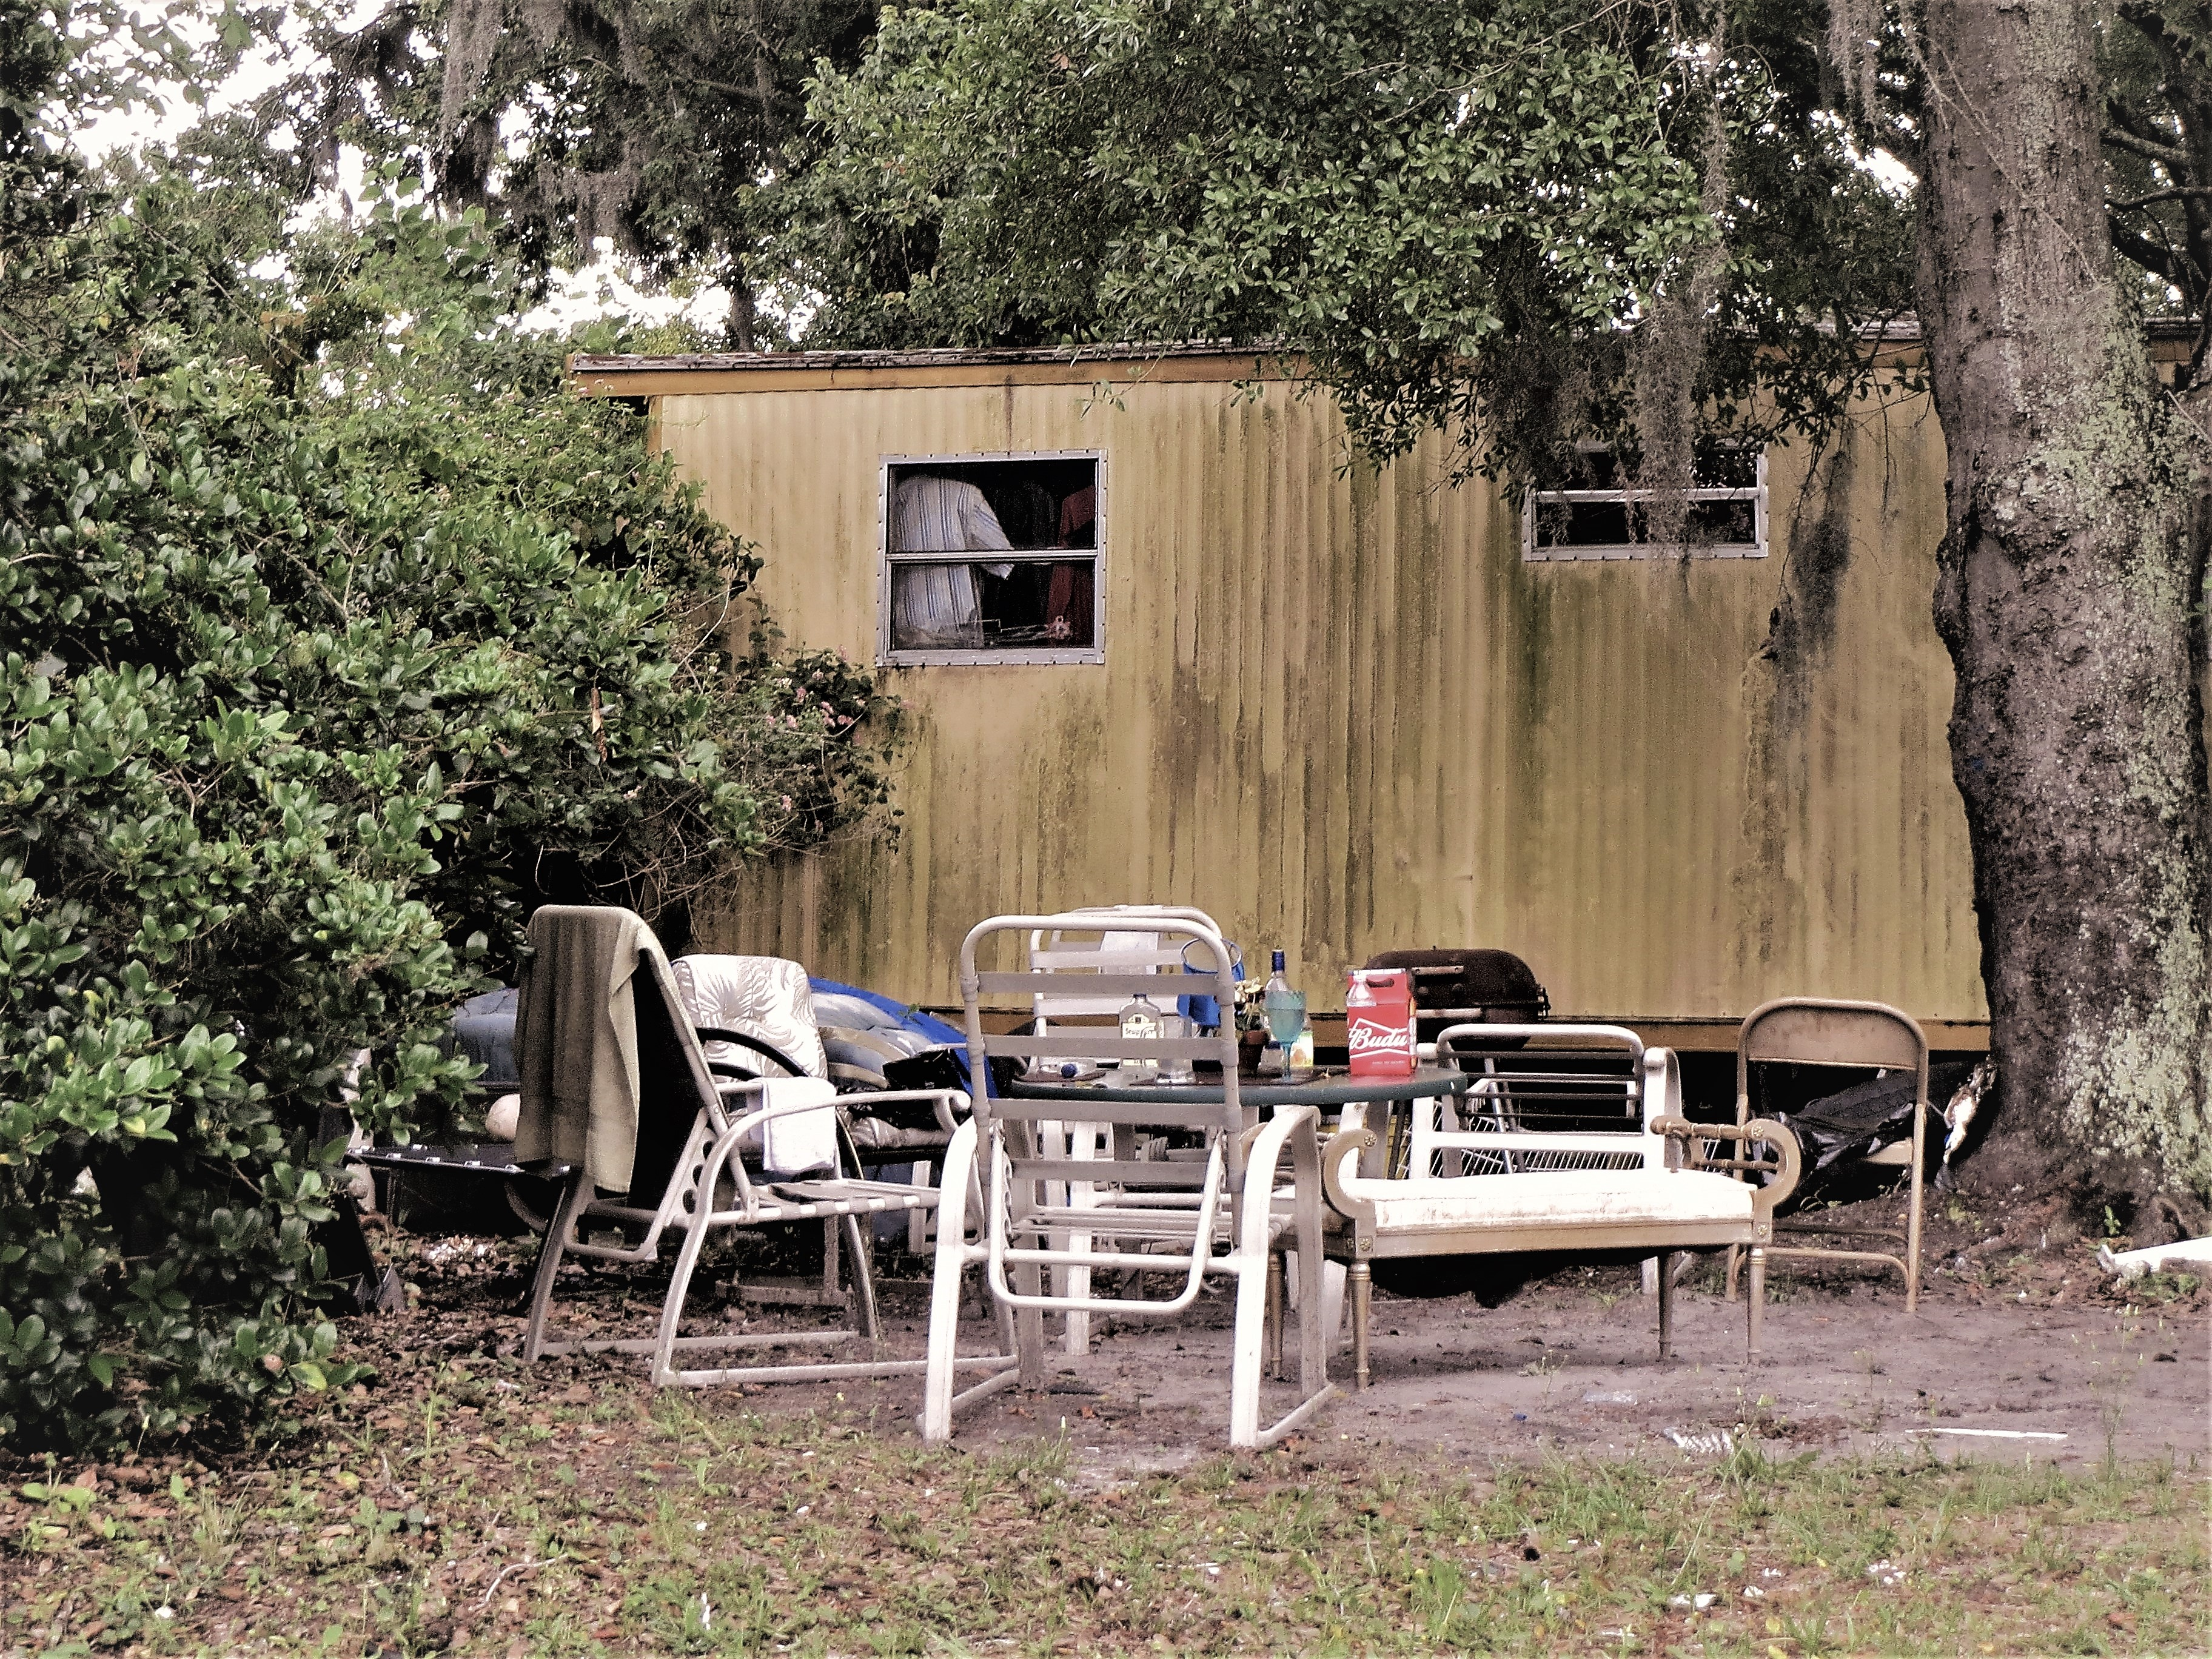 Ideal Trailer Park | jaxpsychogeo on business park, create your own theme park, mobile az, mobile games, midland texas water park, party in the park, mobile homes with garages, port aventura spain theme park, mobile media browser, sacramento water park, feather river oroville ca park, mobile homes clearwater fl, tiny house on wheels park, world trade park, mobile homes in arkansas, clear lake park, industrial park, rv park, mobile homes history,